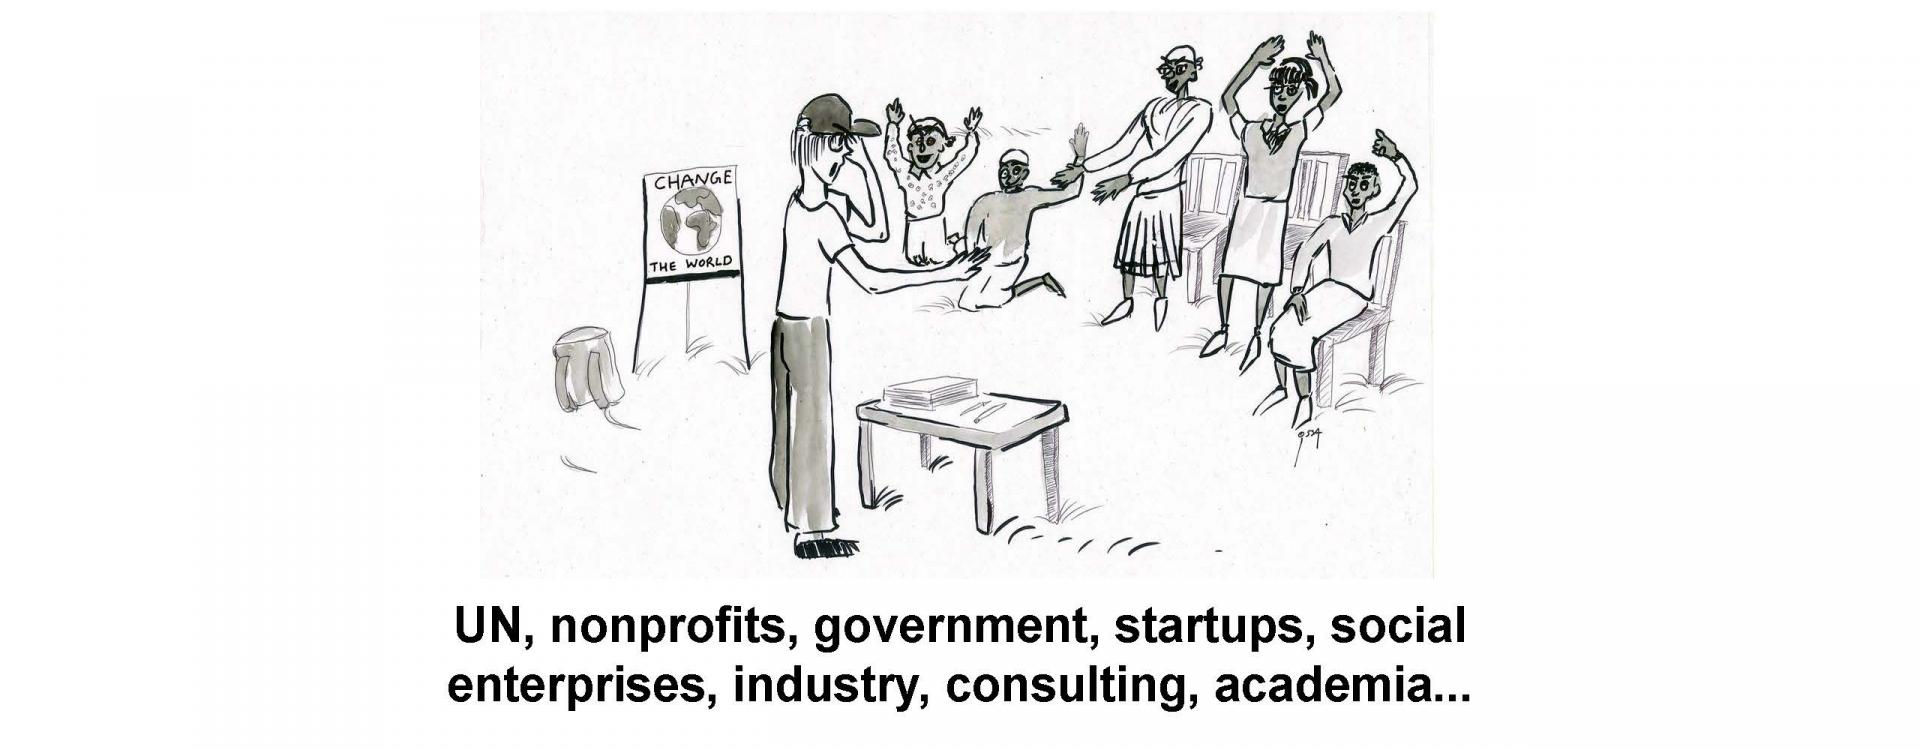 UN, nonprofits, government, startups, social enterprises, industry, consulting, academia...